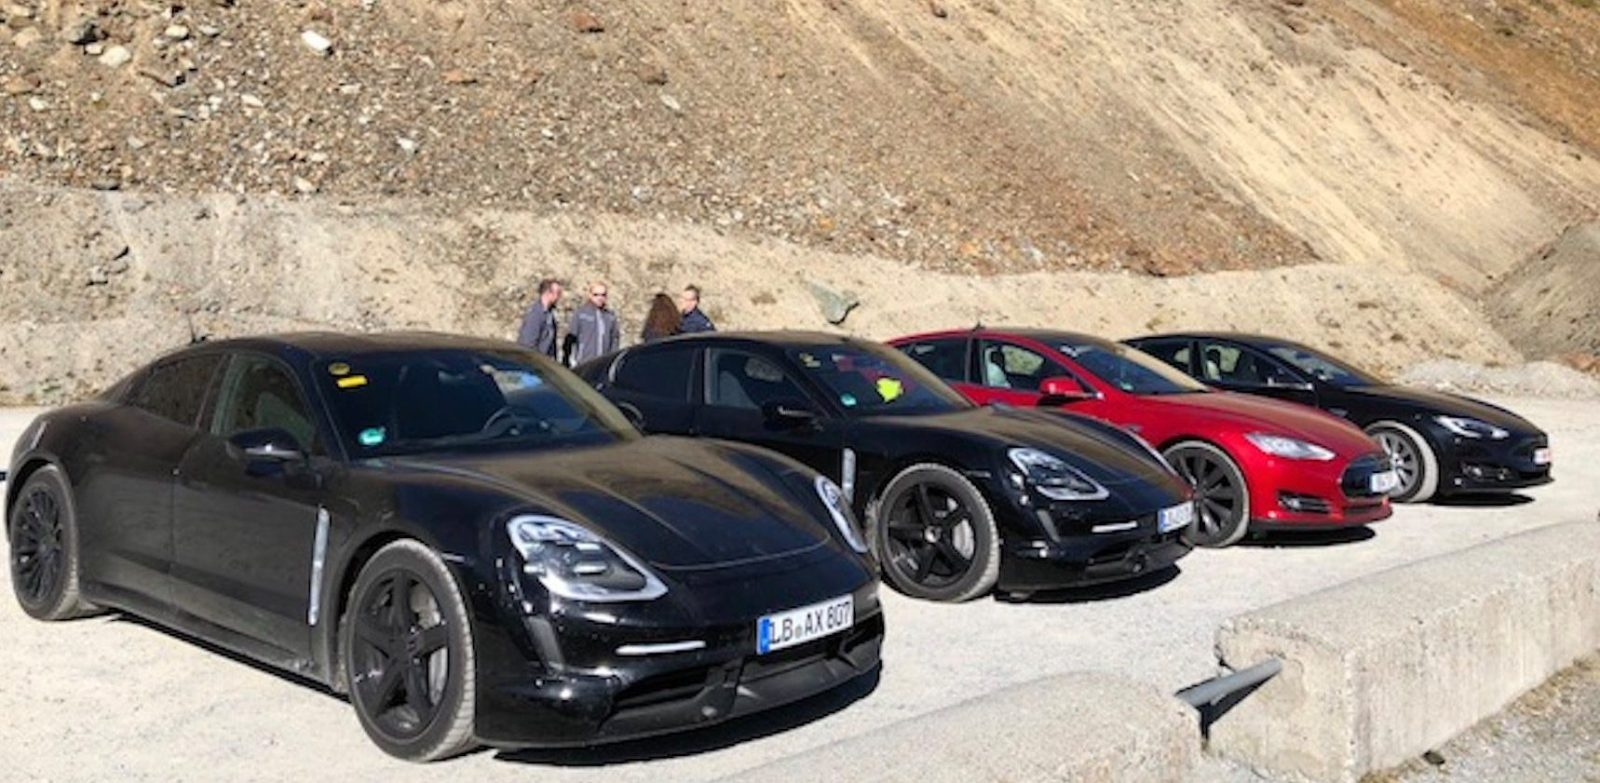 Teslas charge faster than Taycan, due to Porsche's low efficiency